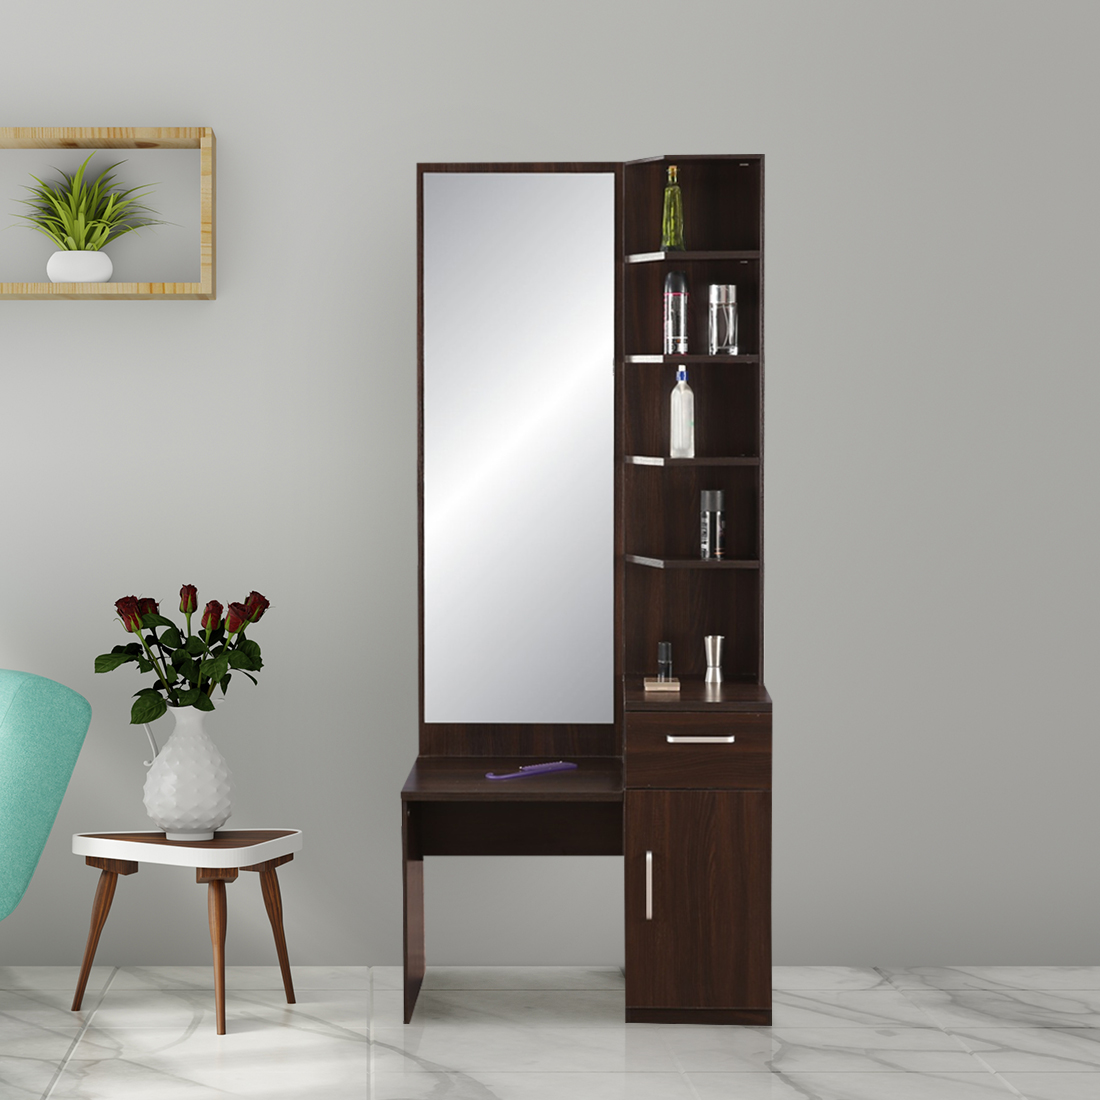 Magnolia Engineered Wood Dressing Table in Oak Colour by HomeTown